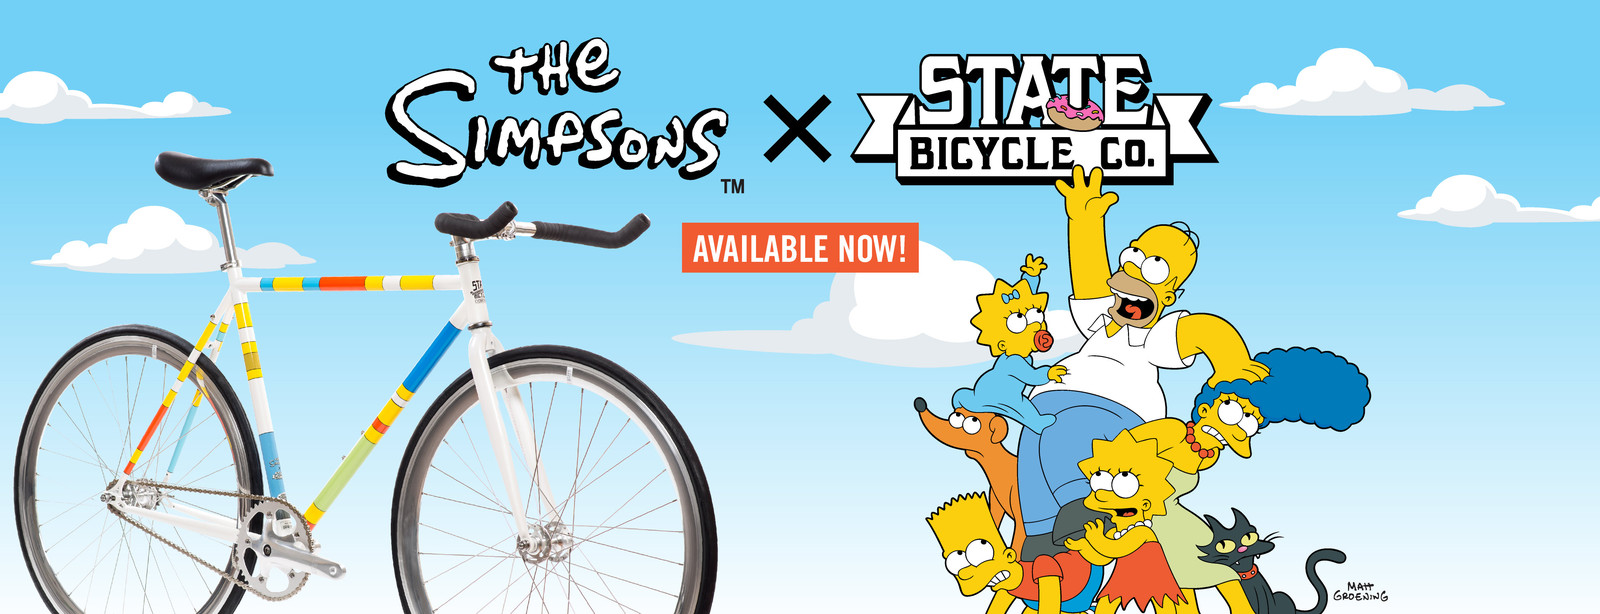 The Simpsons x State Bicycle Co. launch! - Word of Web 134cf6ea1